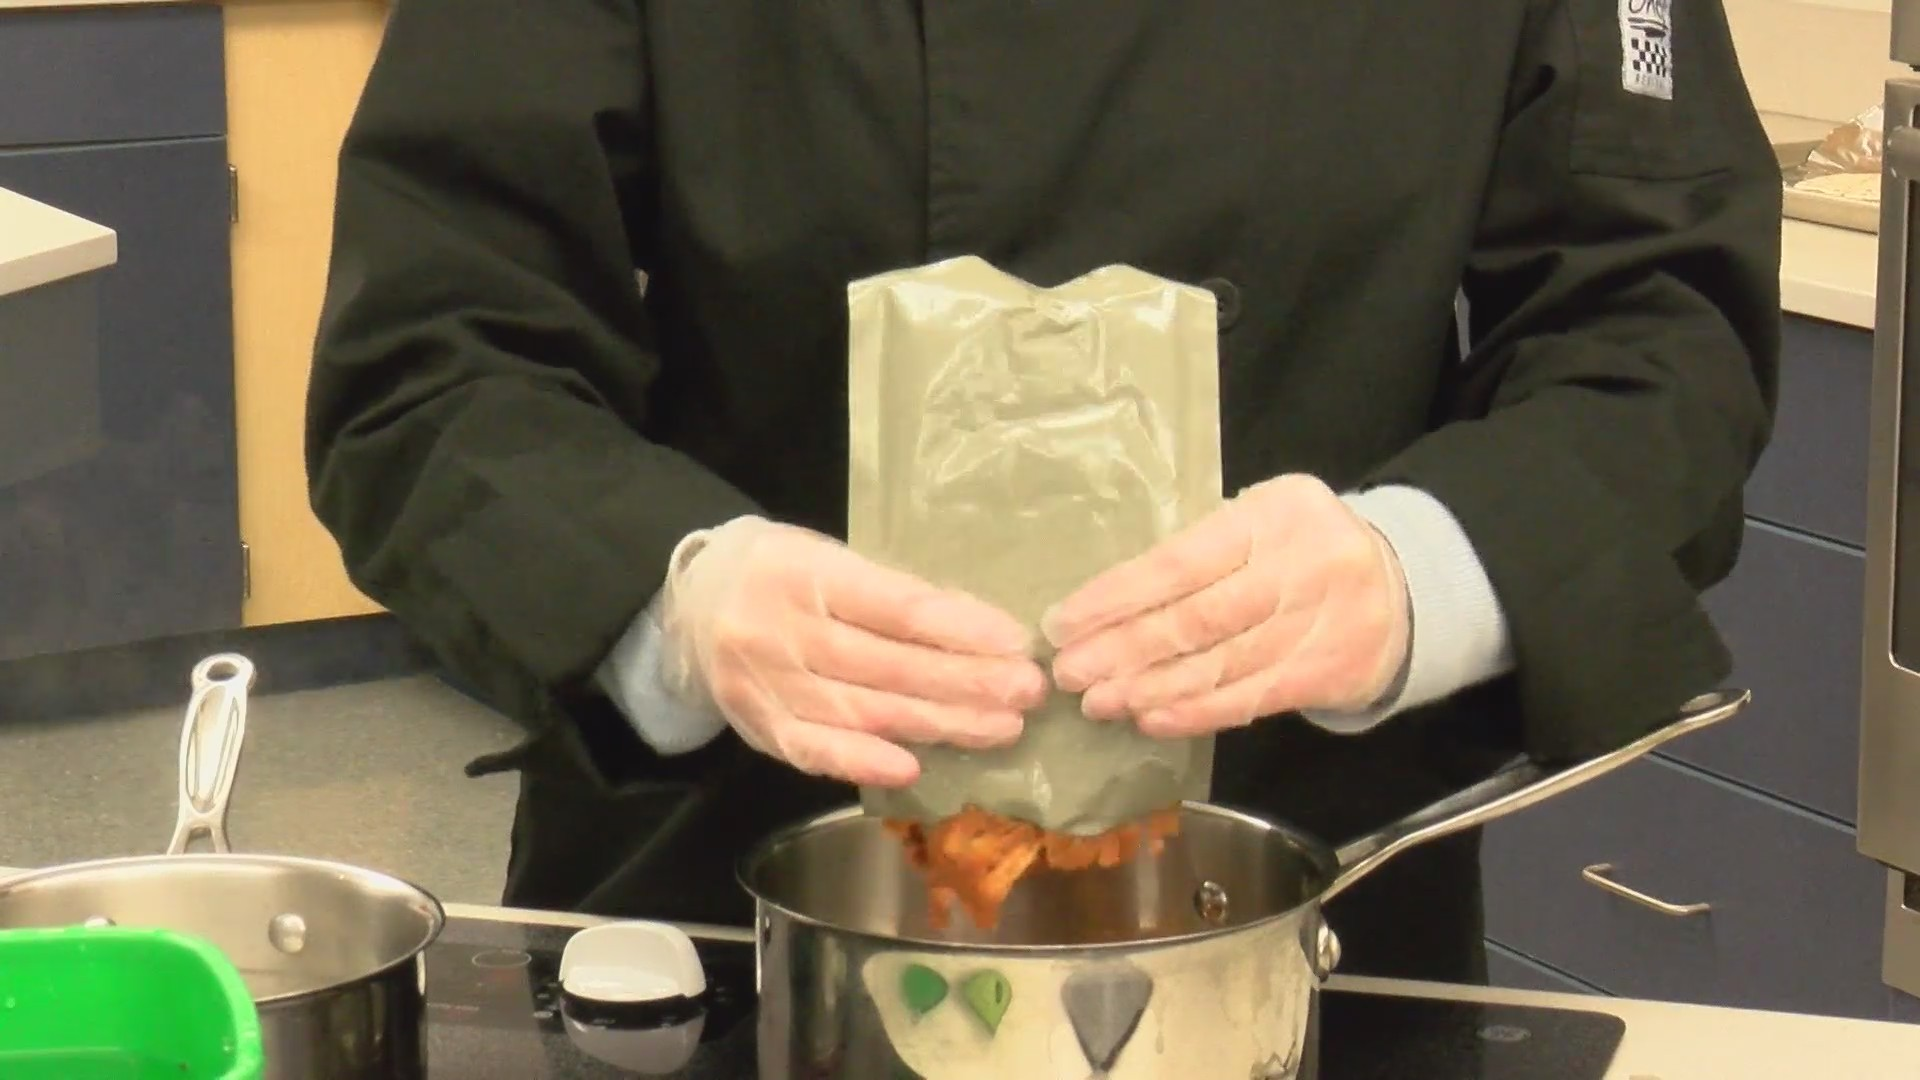 MRE_cook_off_0_20190411231941